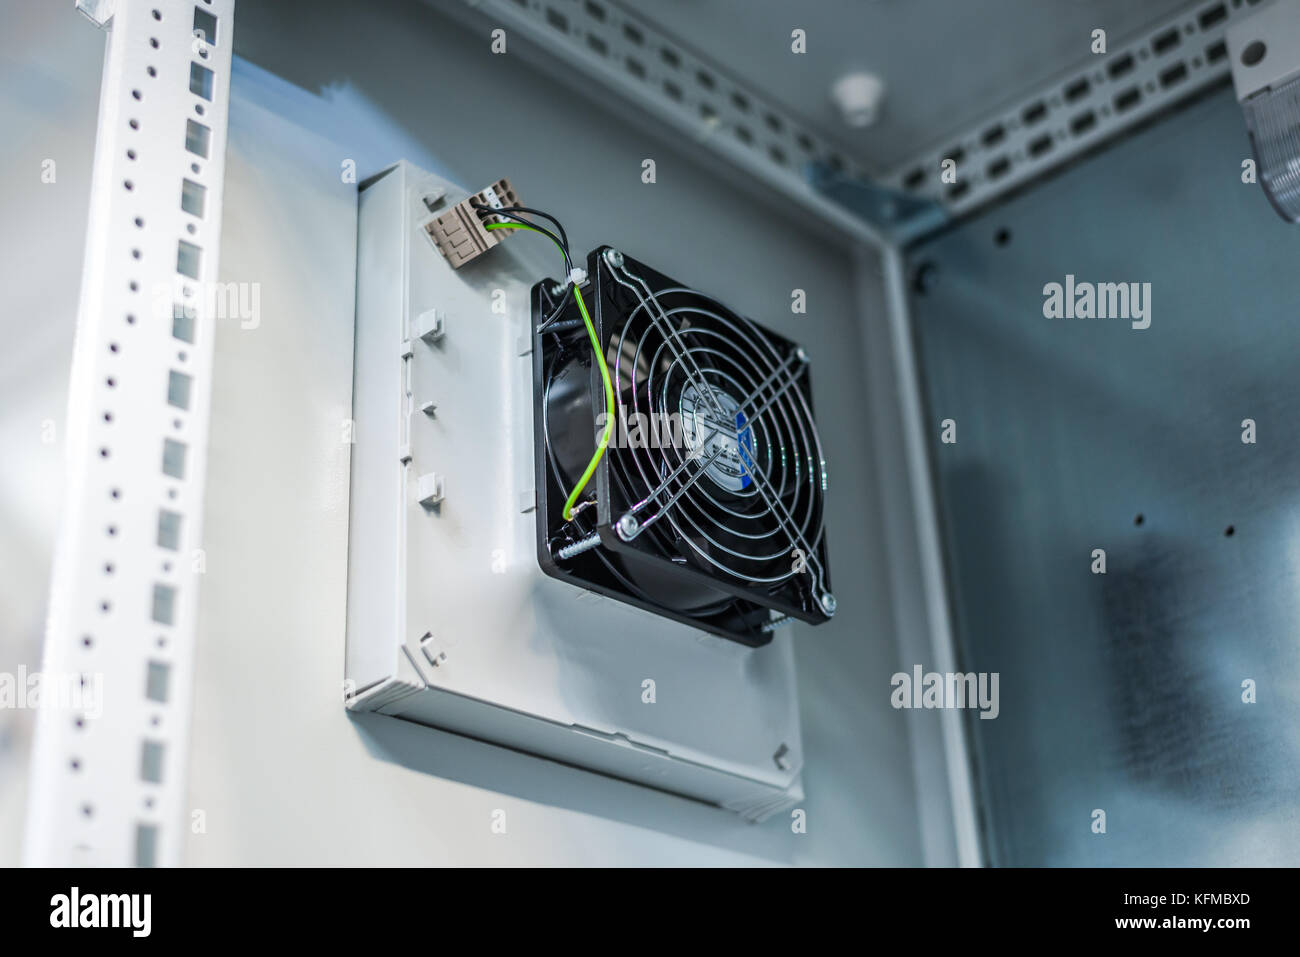 Electric cooling fan in industrial enclosure, power distribution industry. - Stock Image